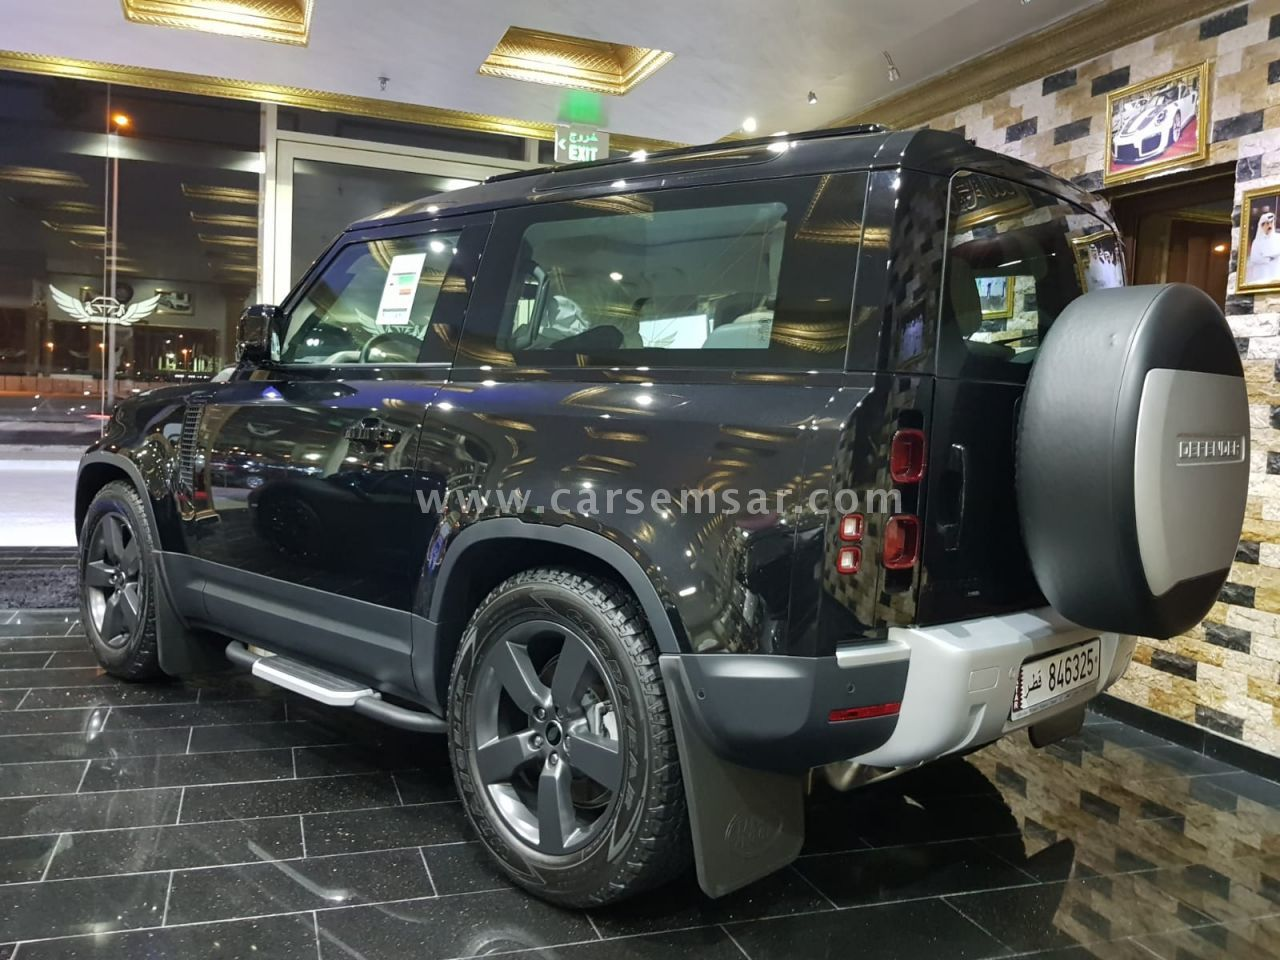 2021 Land Rover Defender 90 for sale in Qatar - New and ...